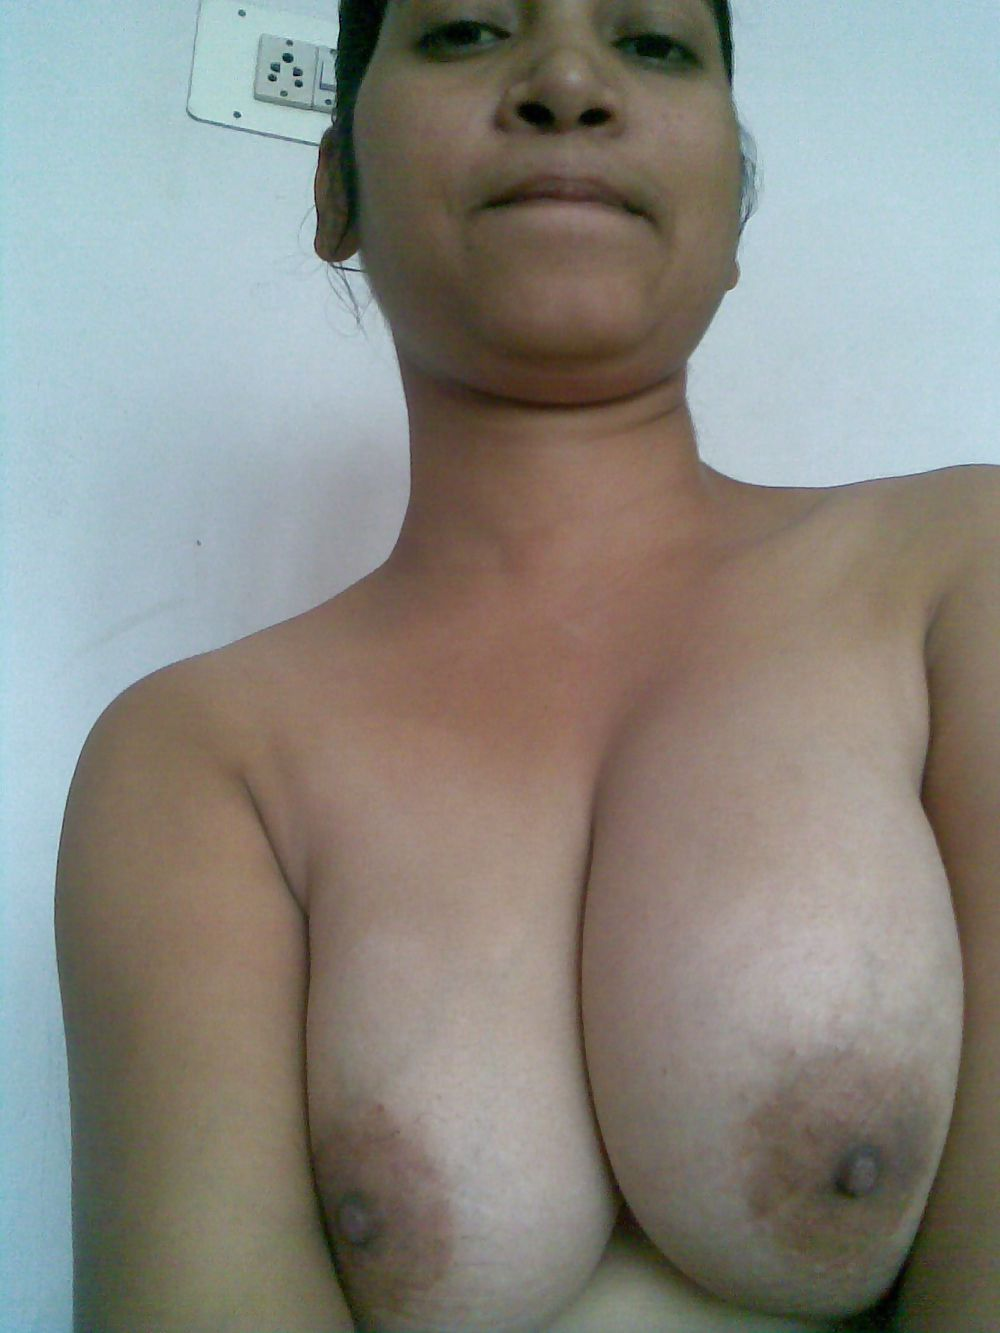 Nude pictures of hermafrodites